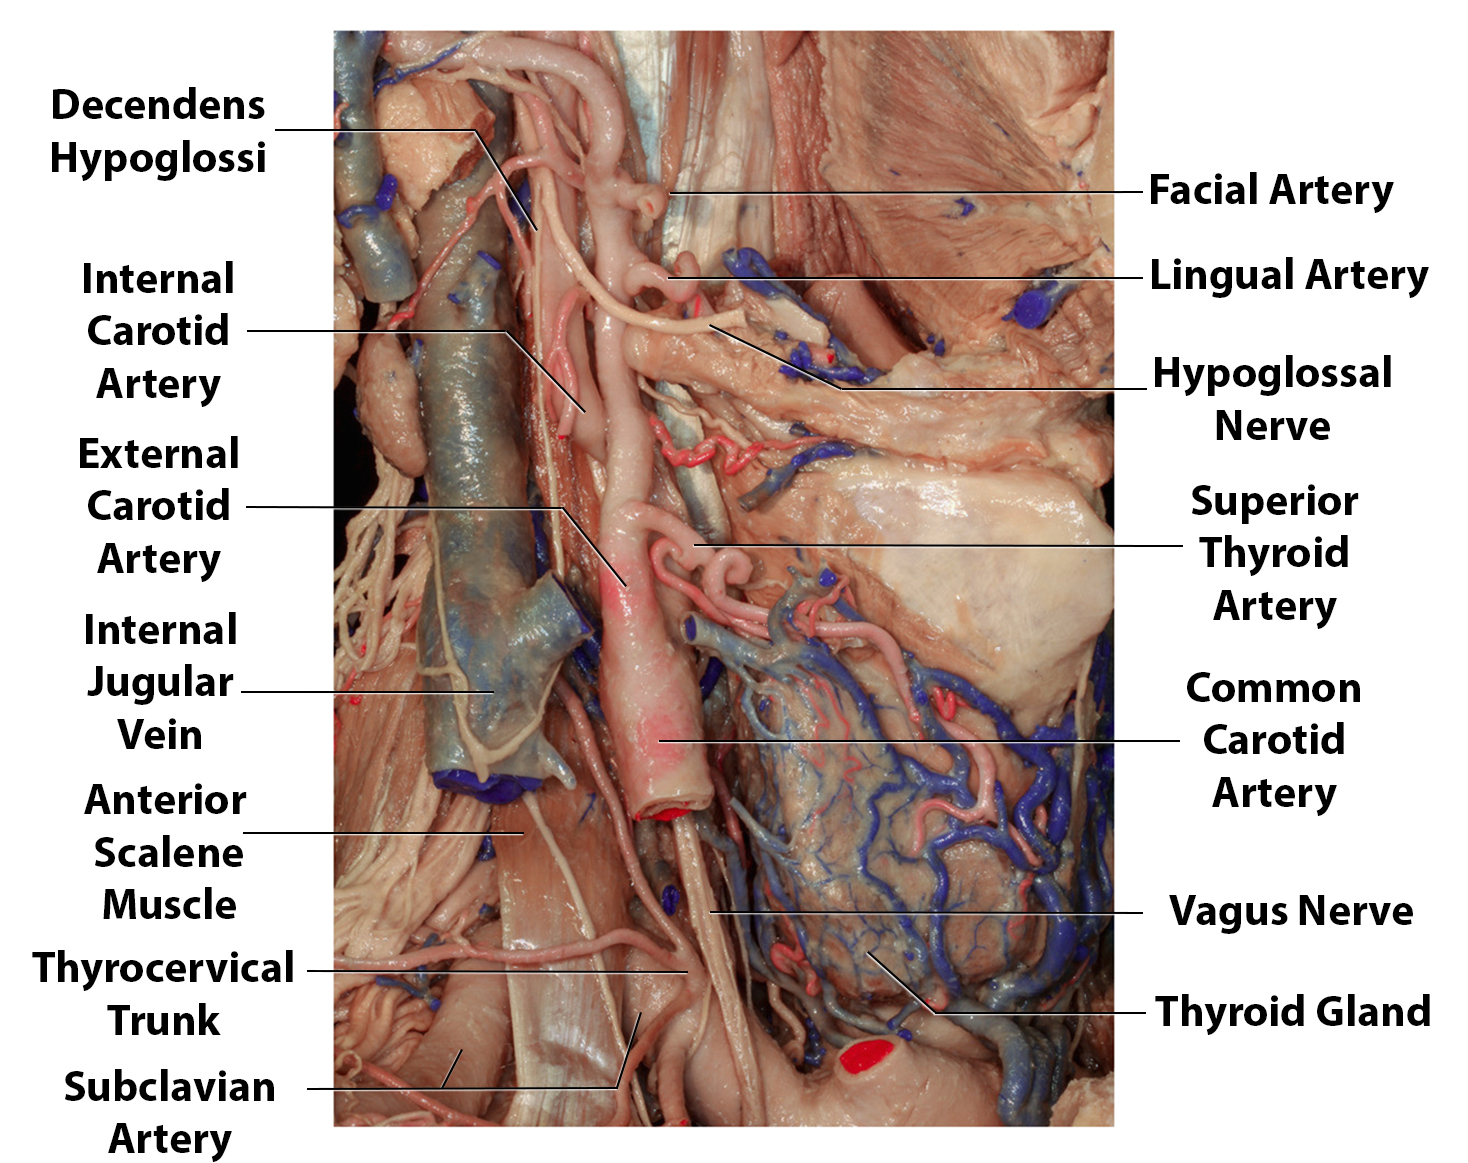 Figure 2: The relationship between the vasculature and the nerves in the neck as related to CEA are summarized. The vagus nerve lies deep to the carotid artery and the hypoglossal nerve crosses the ECA and distal ICA. If the operator is disoriented early in dissection before exposure of the carotid sheath and continues dissection more toward the midline (most often related to too much head turn) onto the pharyngeal muscles, postoperative swallowing difficulty is likely. This complication should be avoided by lateral redirection of the dissection along the medial belly of the sternocleidomastoid muscle without injuring the jugular vein.